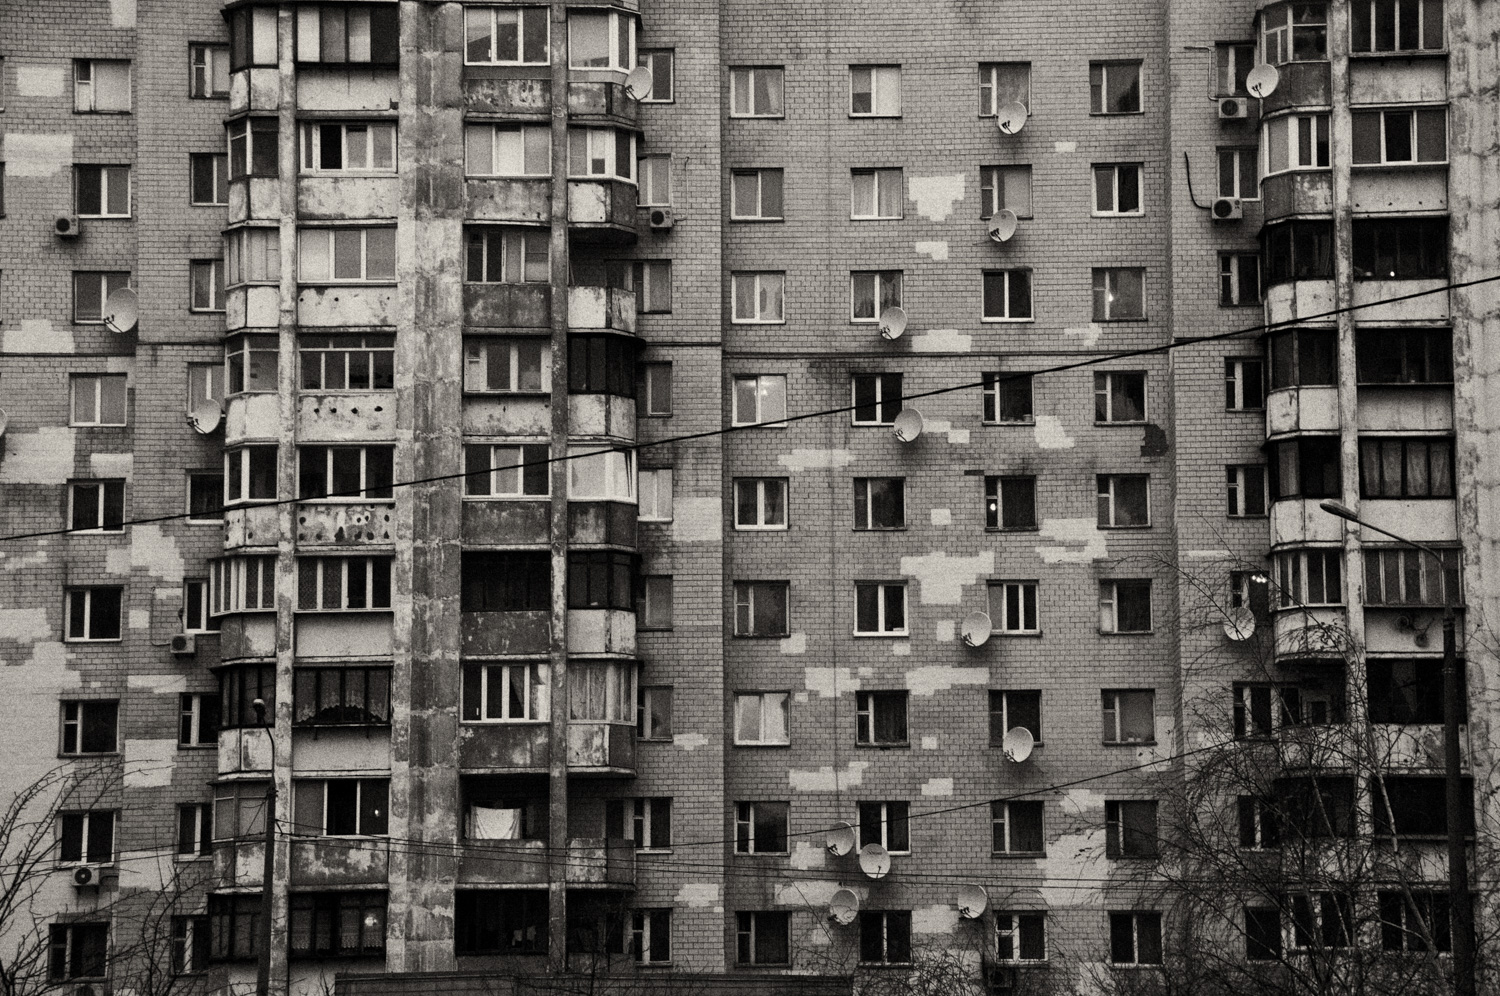 A personal photo essay about childhood memories and dreams. Schtsch is the Germanized version of the Cyrillic letters Щ. It is found in the name of Trojeschtschina (Троєщина), a suburb in Kiev, where I grew up.